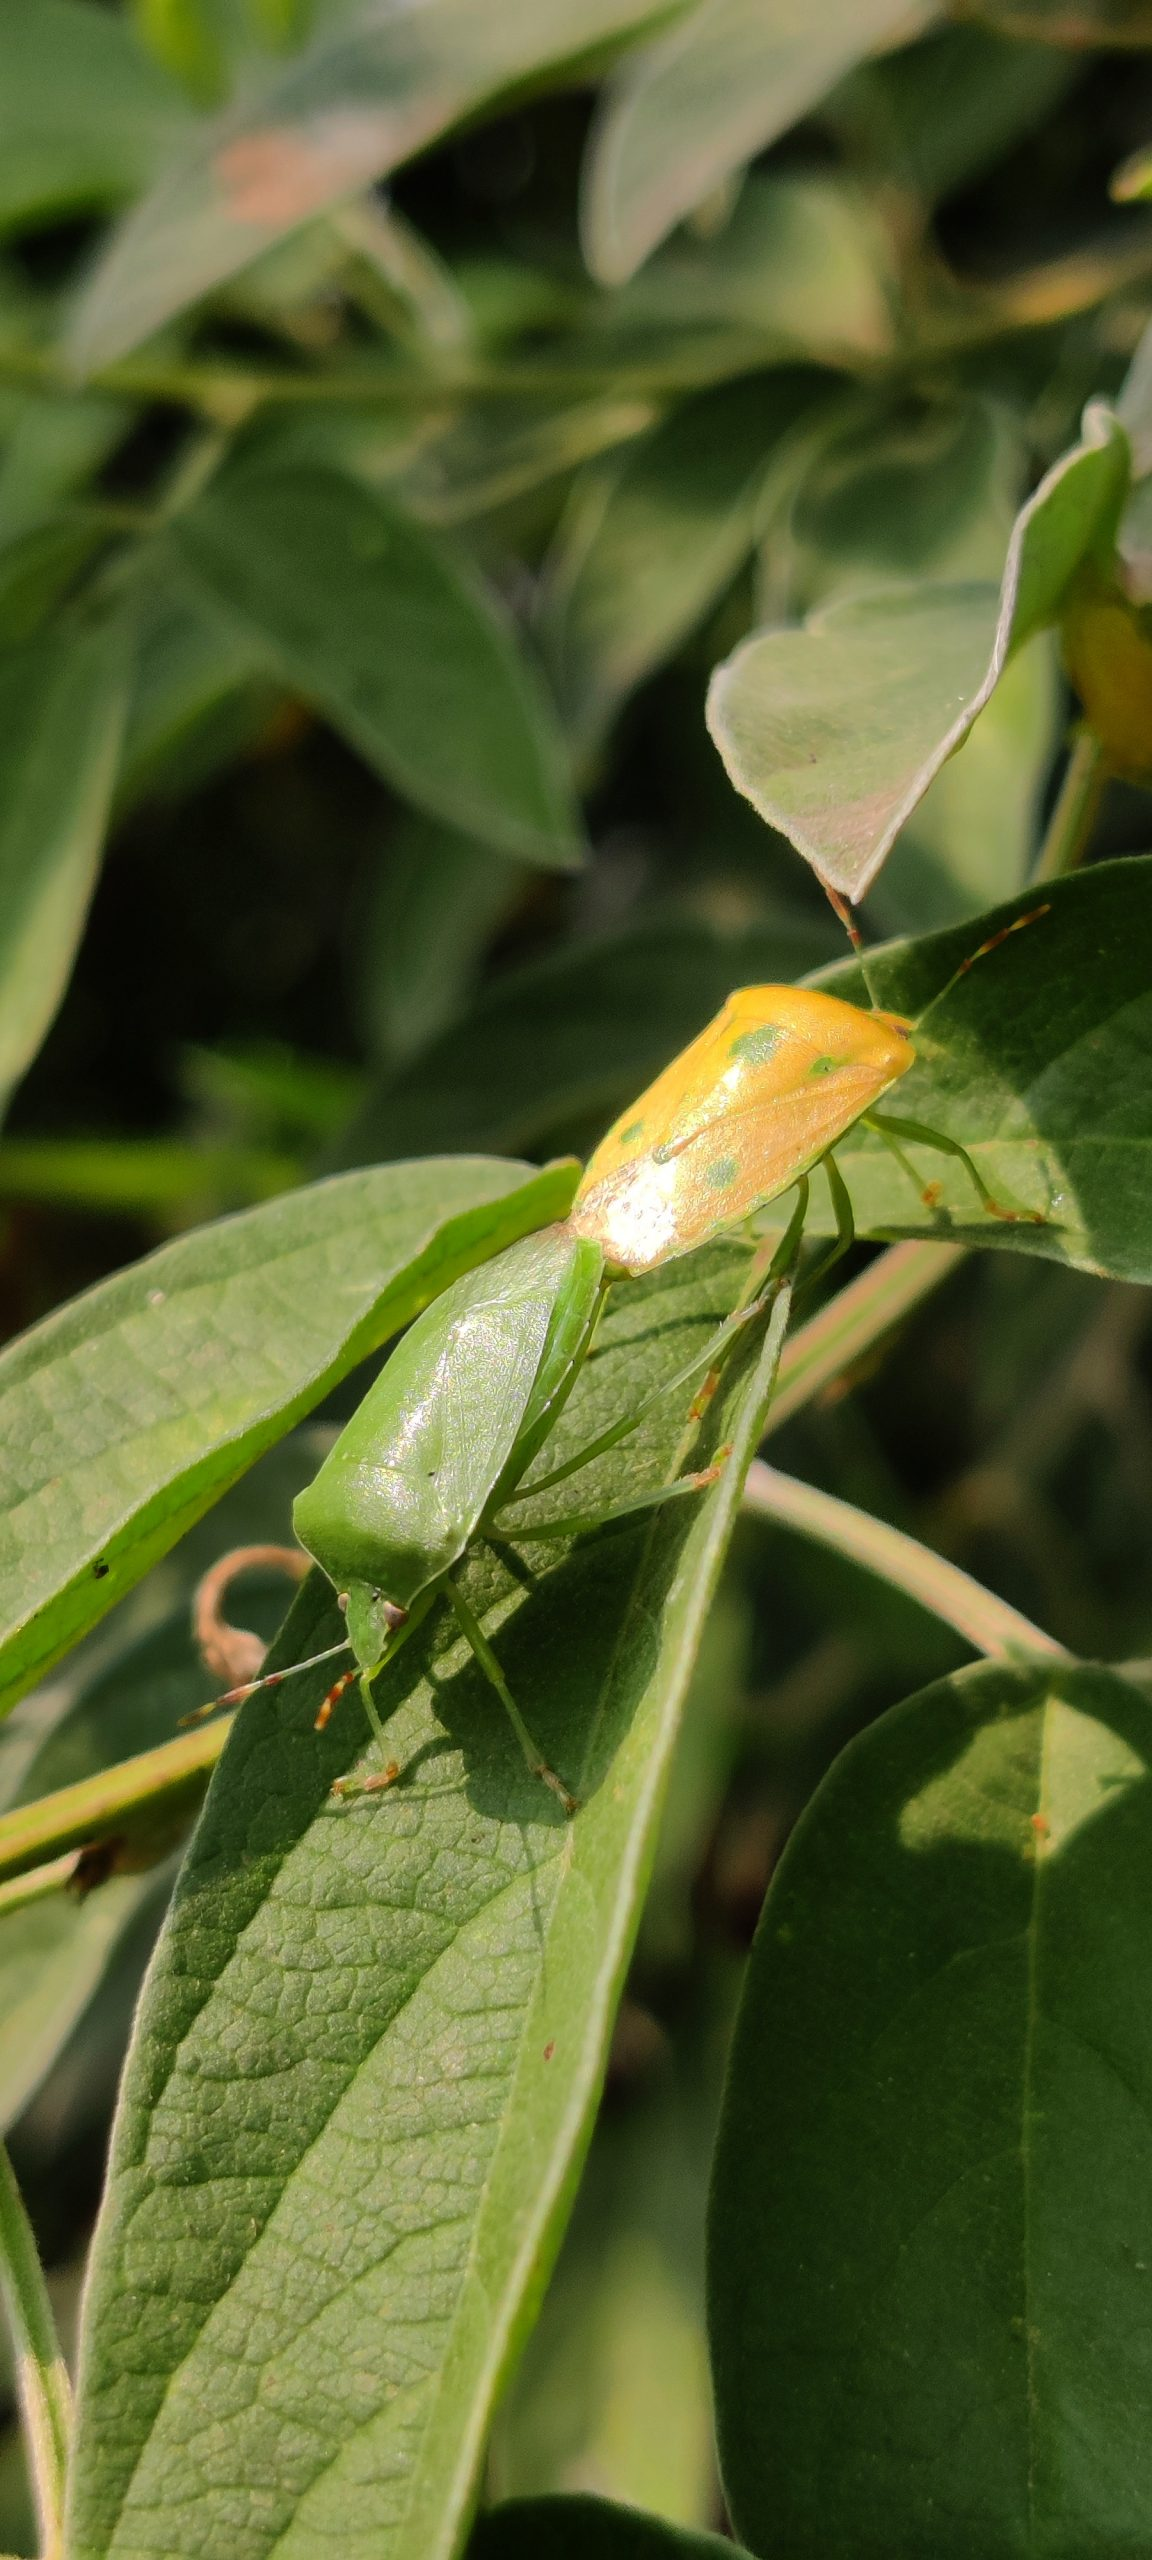 An insect on a leaf